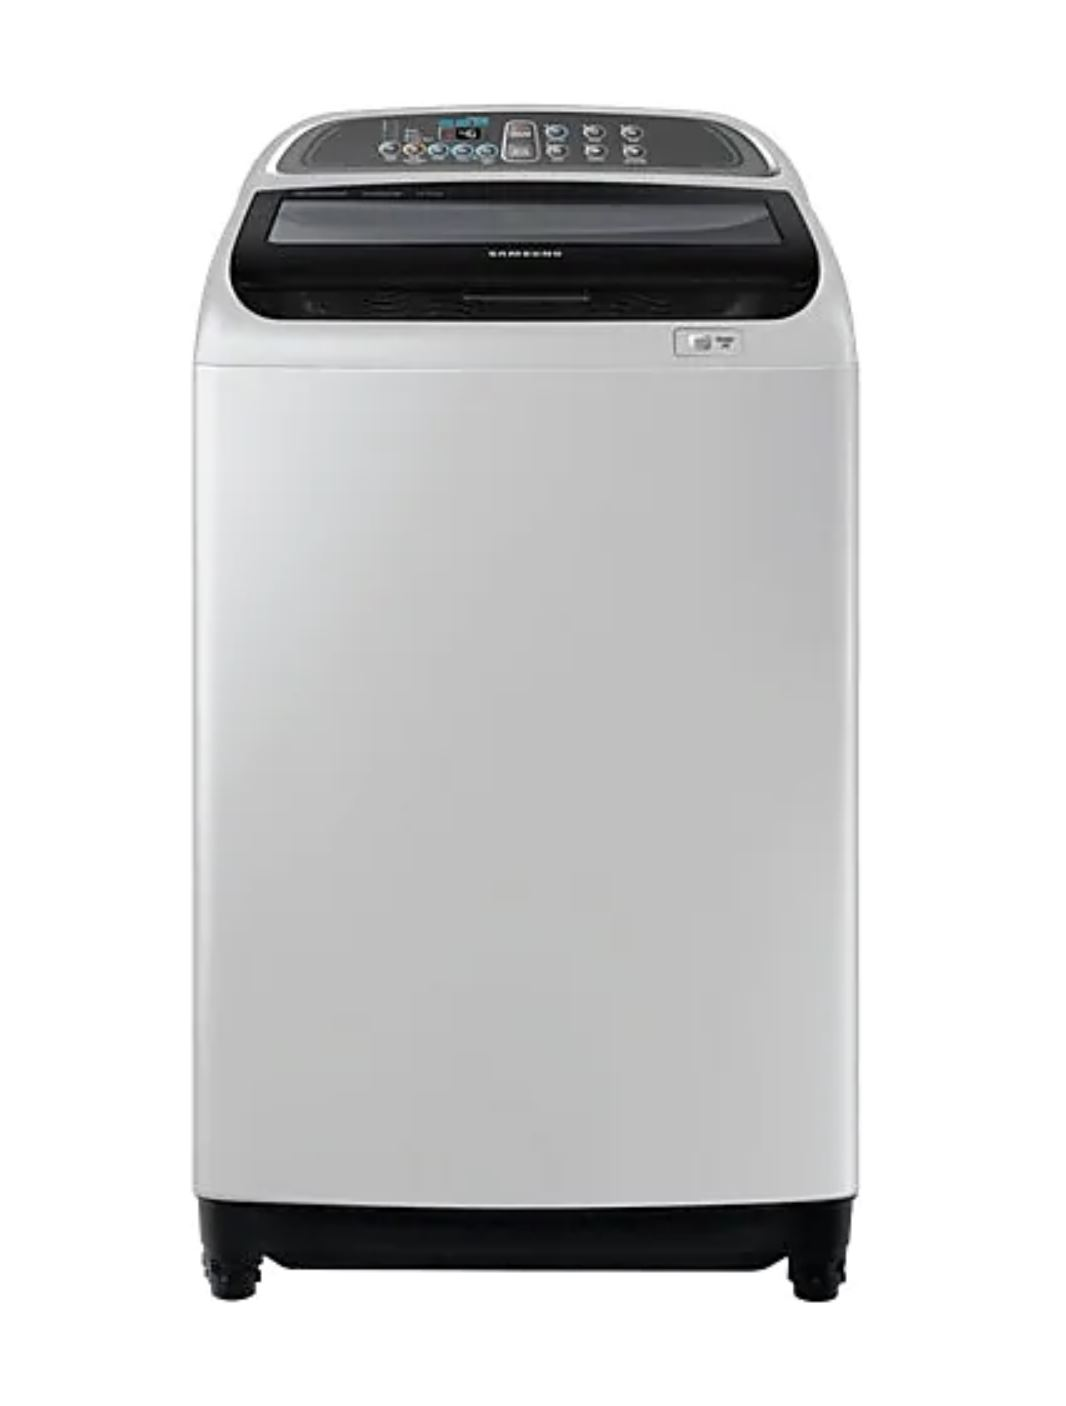 Samsung Top Loader With Wobble Technology 13 Kg Wa13j5710sg Fa Products4u